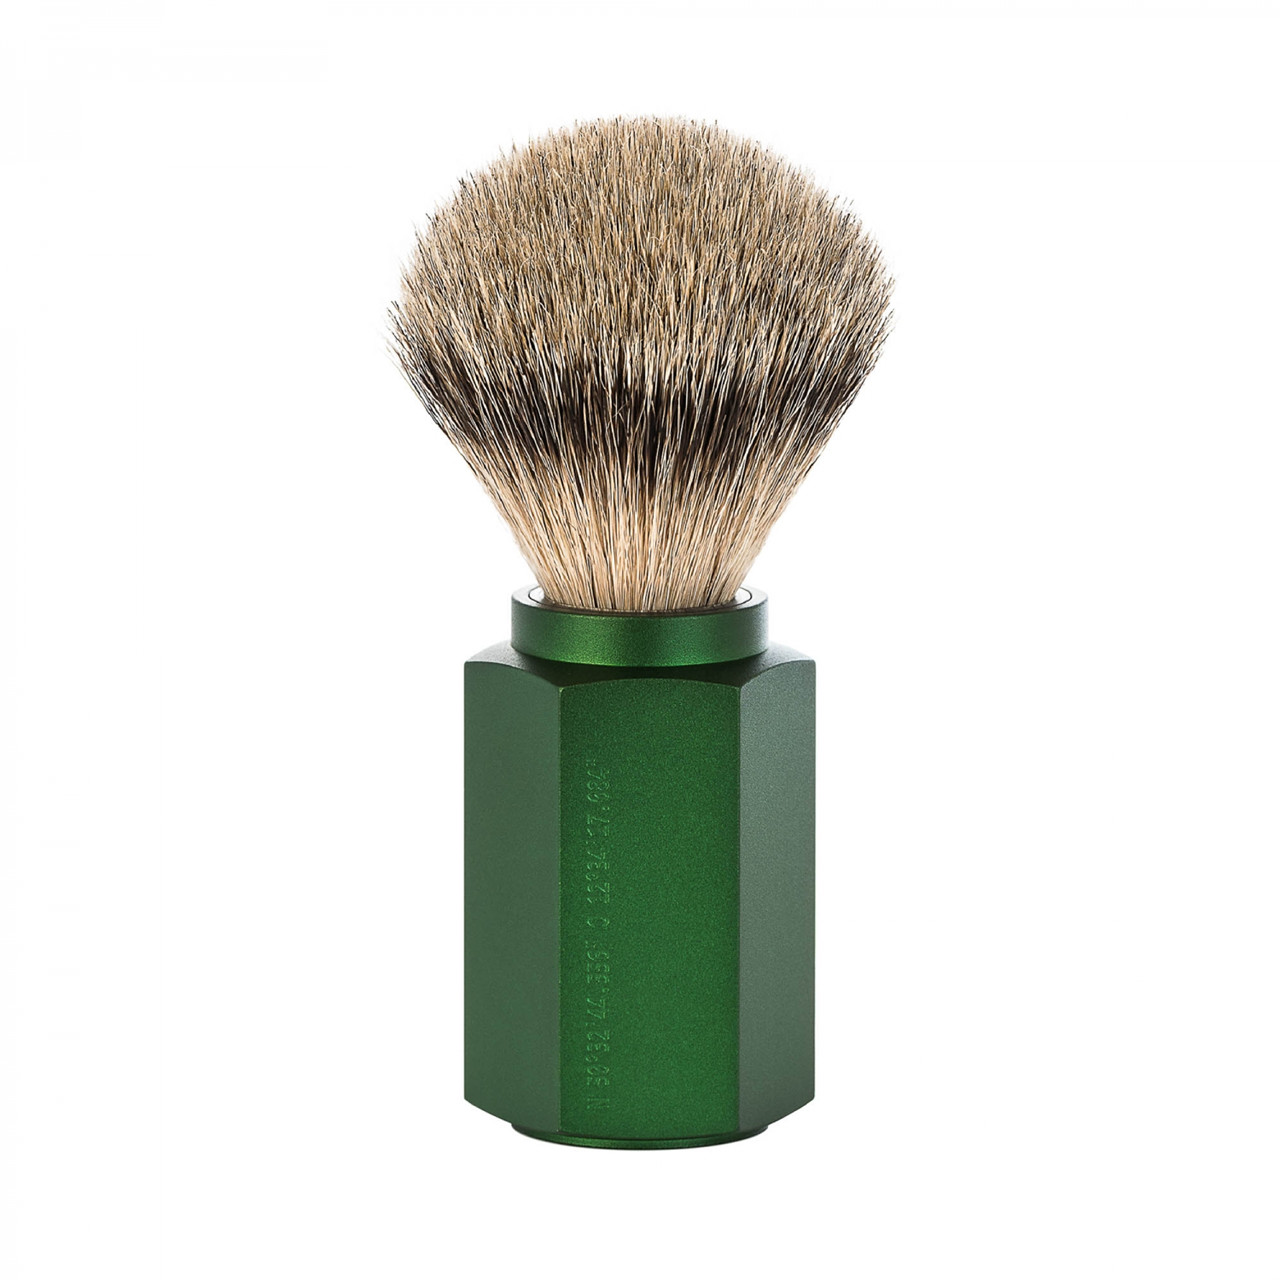 Image of   Mühle x Mark Braun Silvertip Badger Barberkost, 21 mm, Hexagon, Aluminium Forest